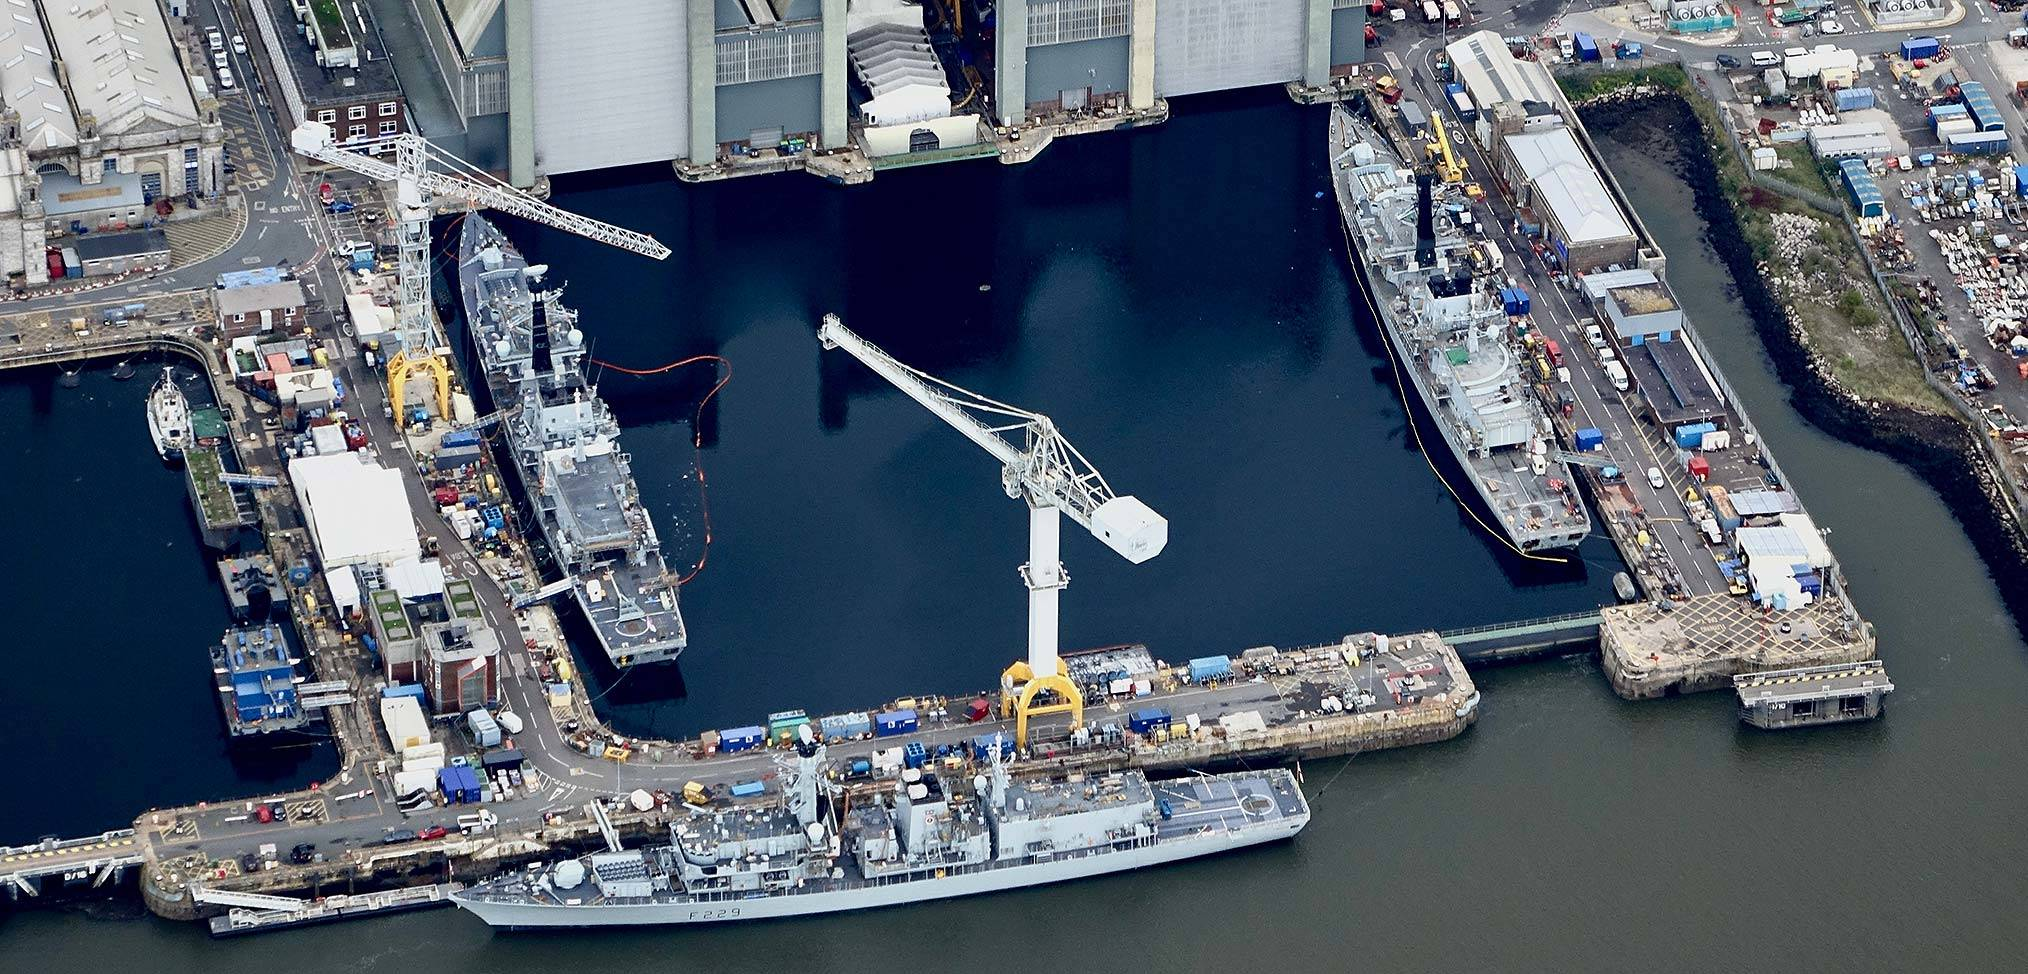 Minister tells head of the Royal Navy to make increasing warship availability a priority